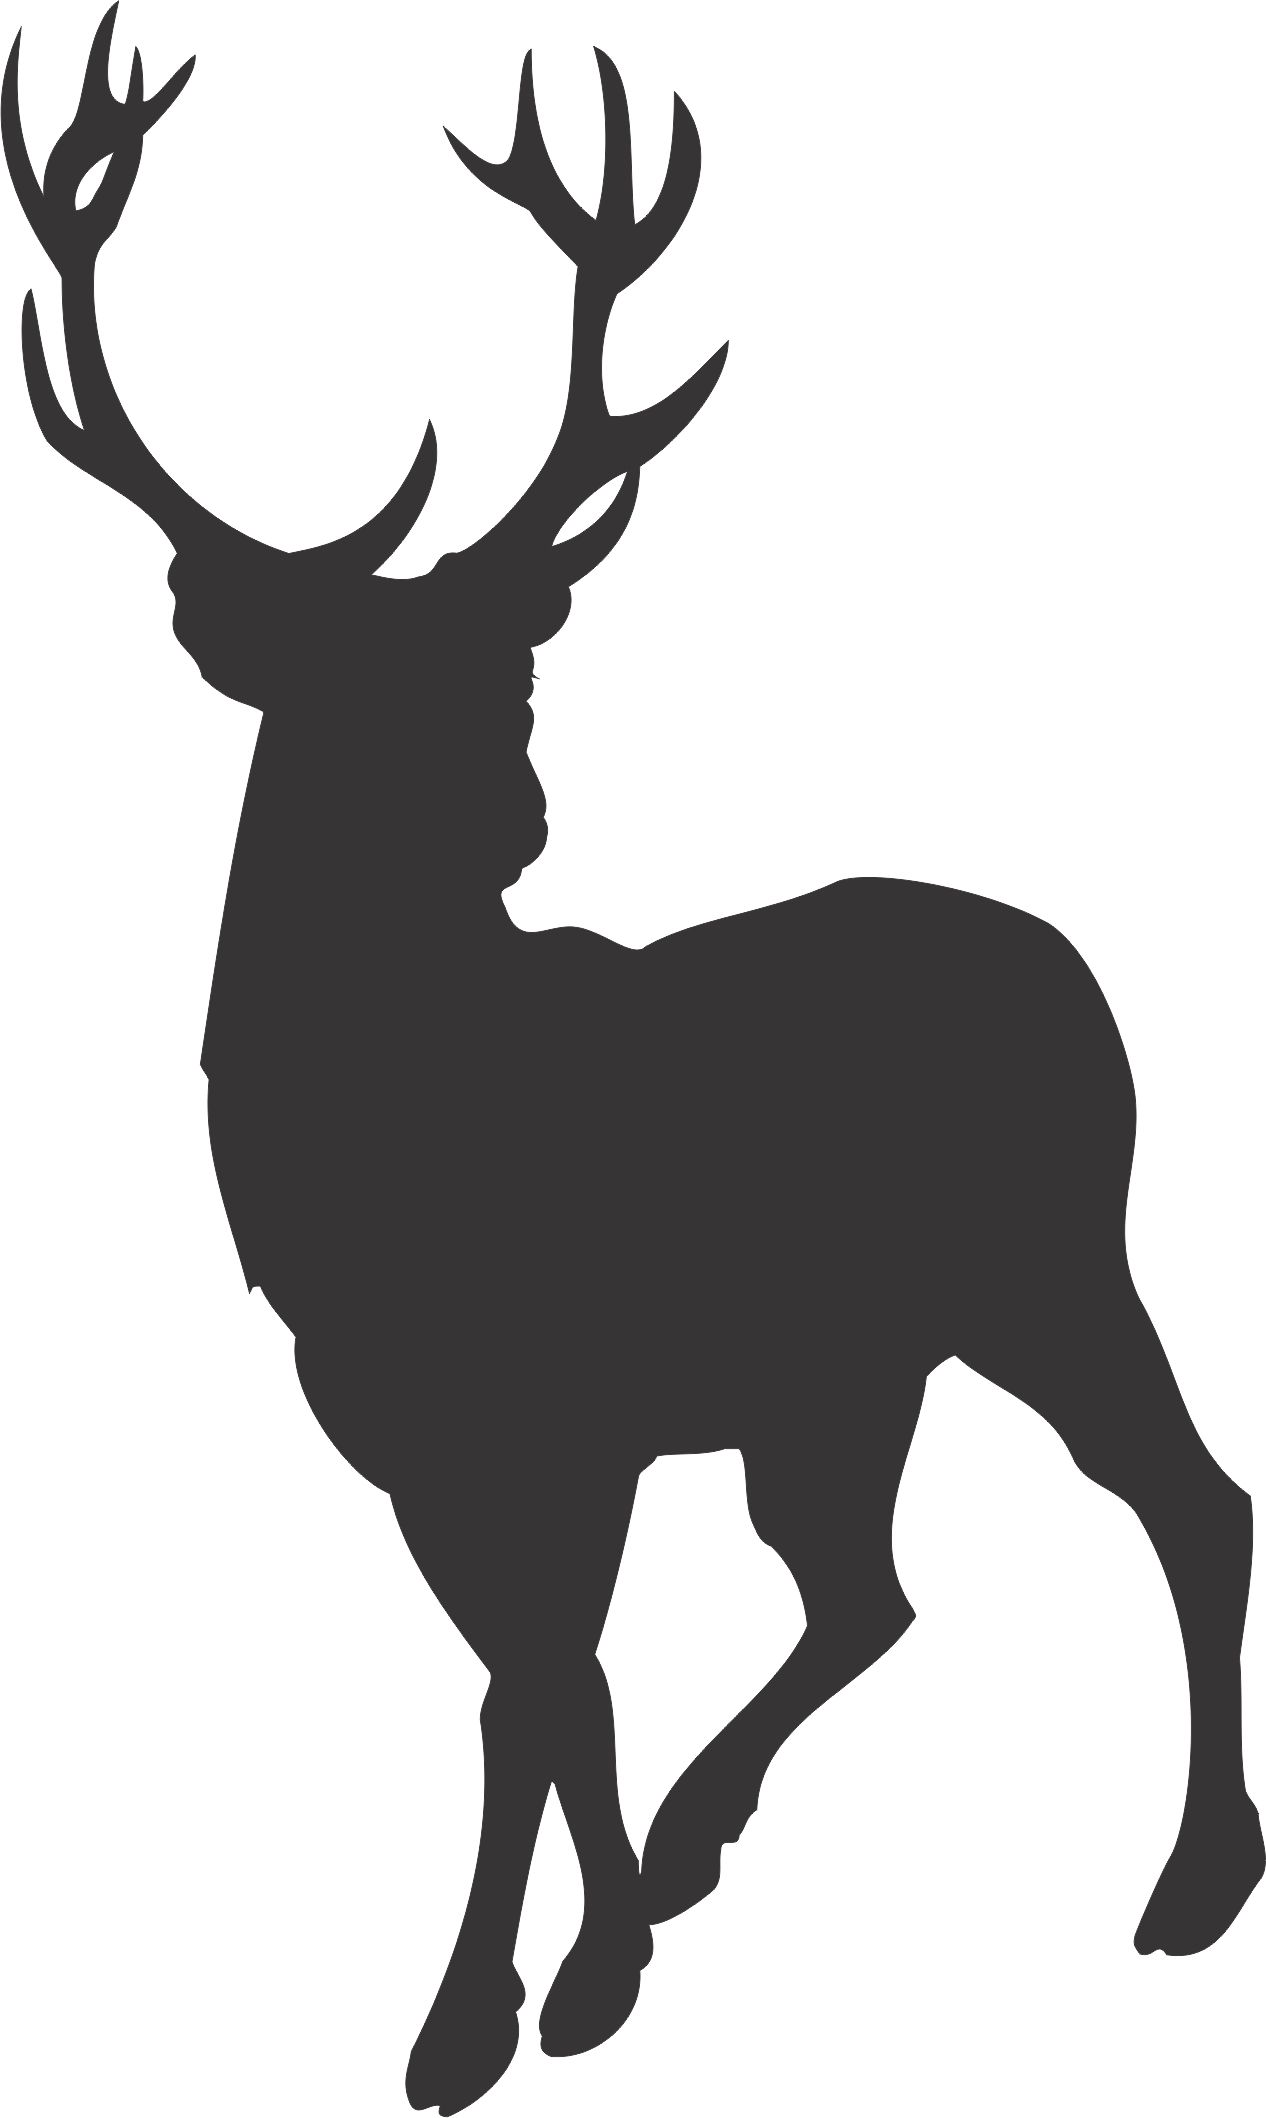 Free download Stag Silhouette Clipart for your creation..